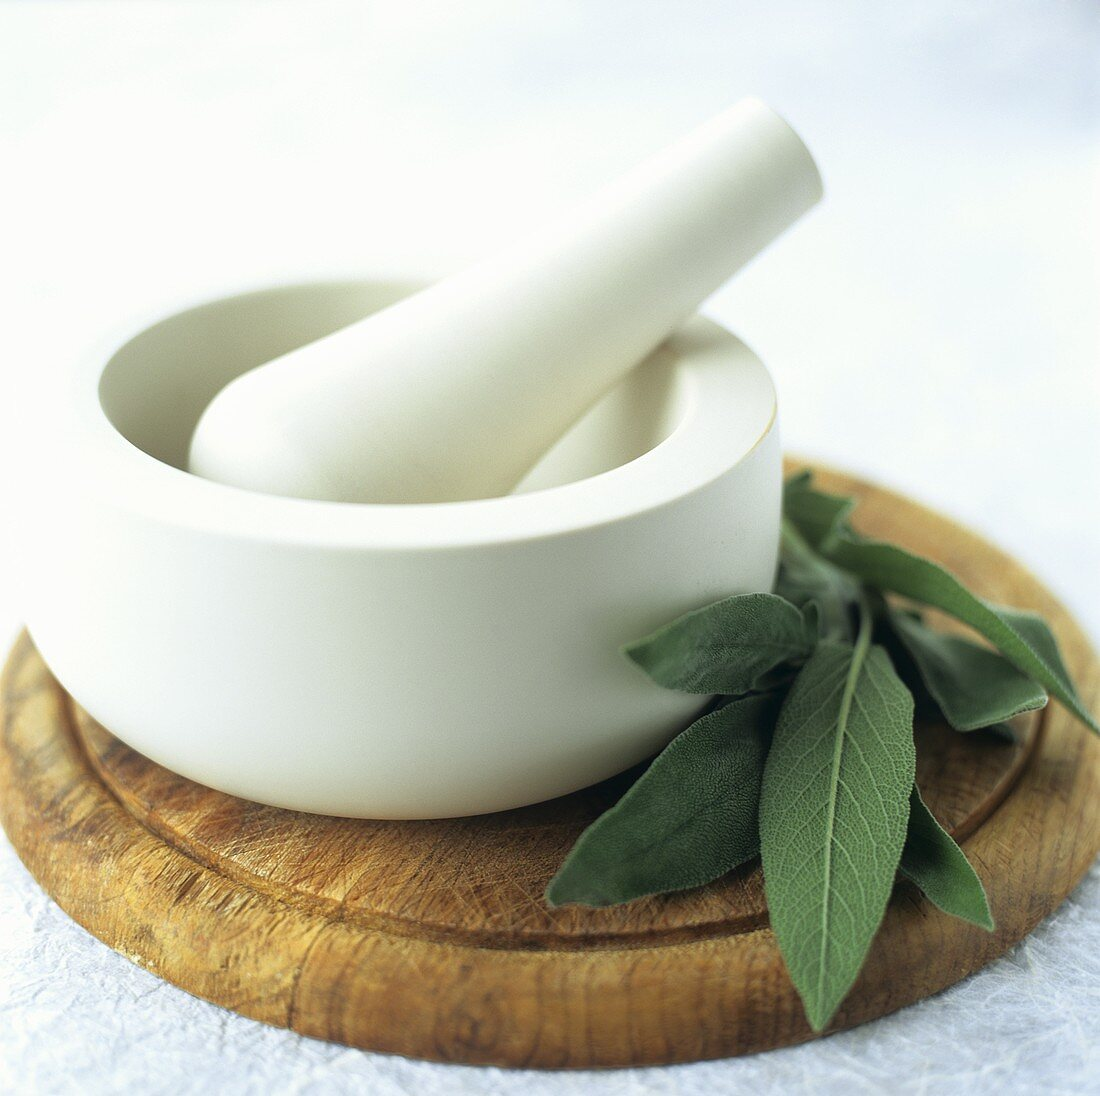 Stone mortar and pestle on a kitchen board with sage